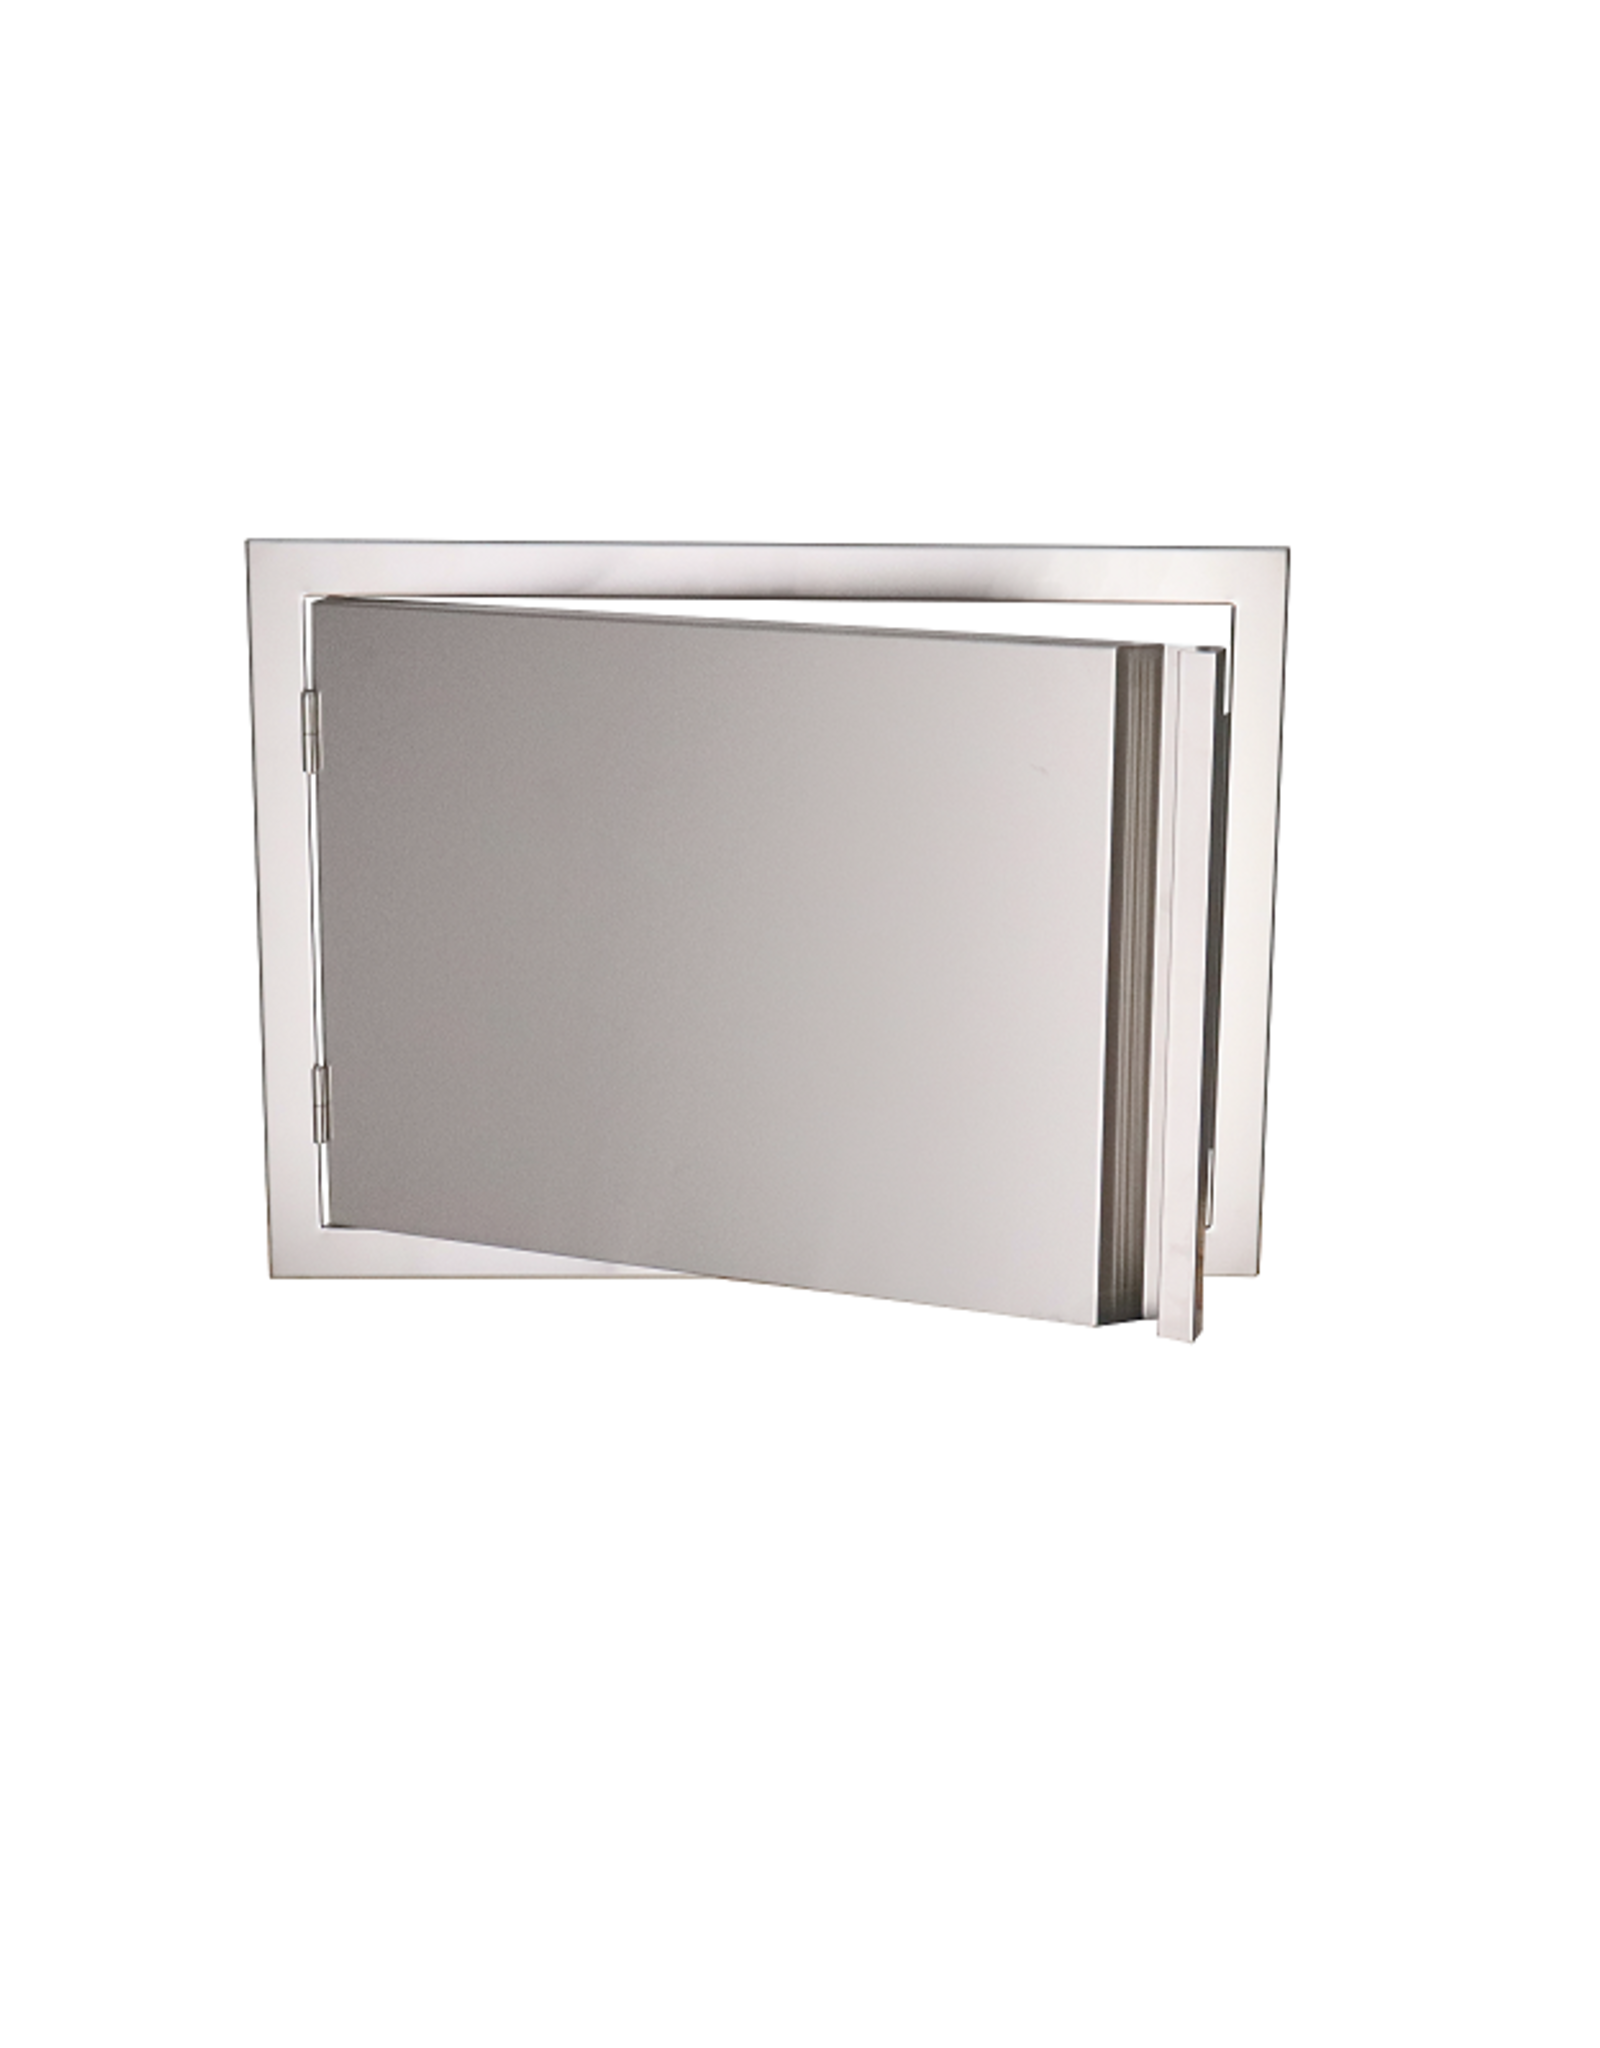 Renaissance Cooking Systems Renaissance Cooking Systems The Valiant Series Horizontal Double Door - VDH1